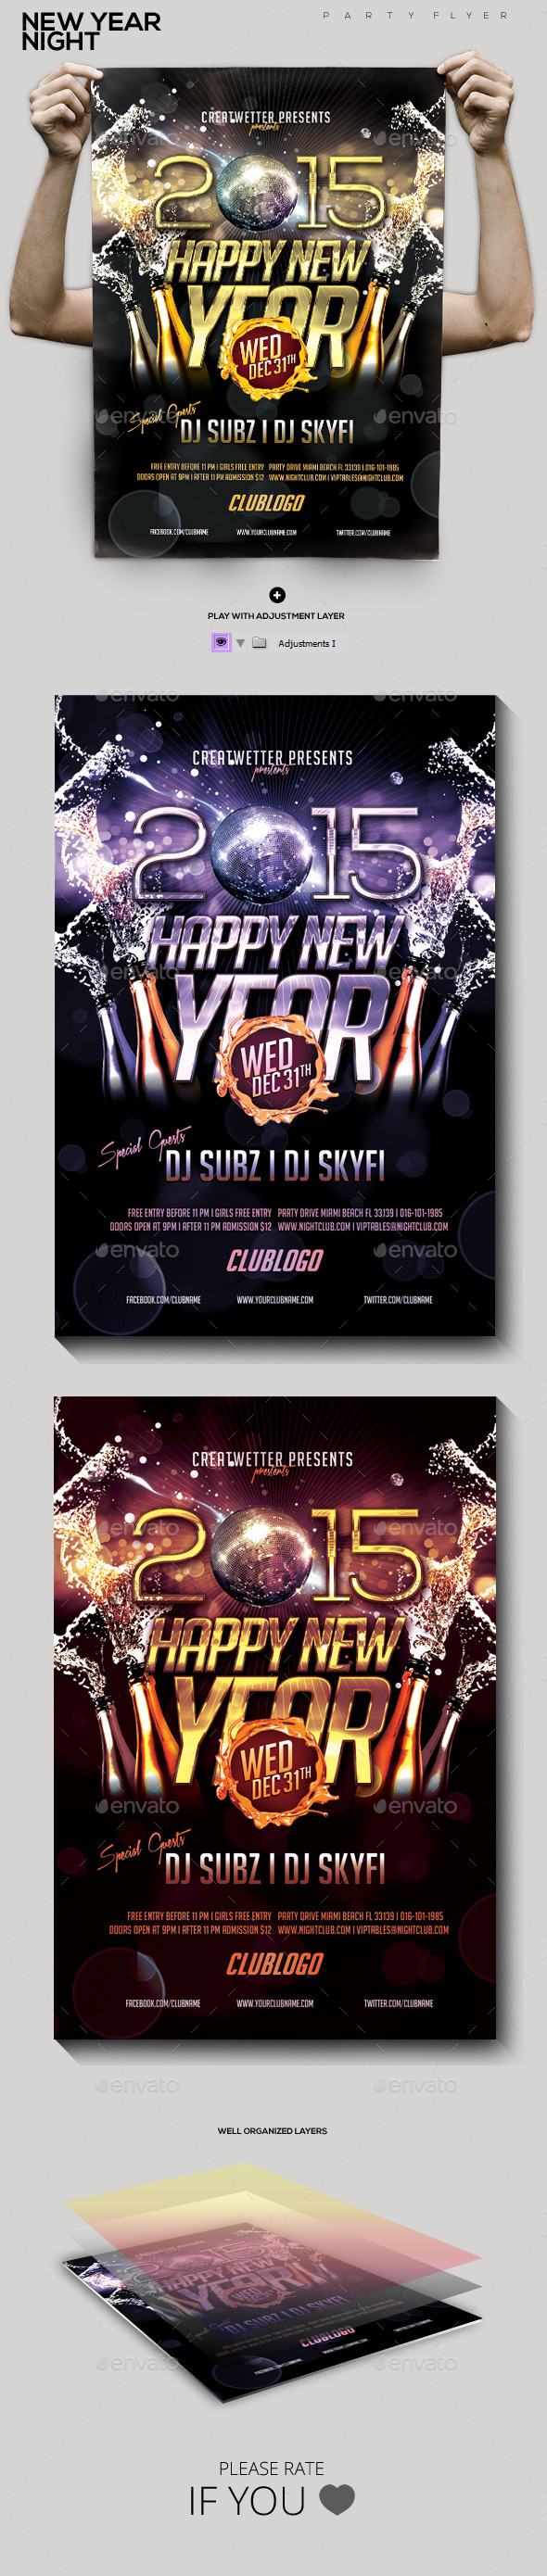 GraphicRiver New Year Night Party Flyer 9741047